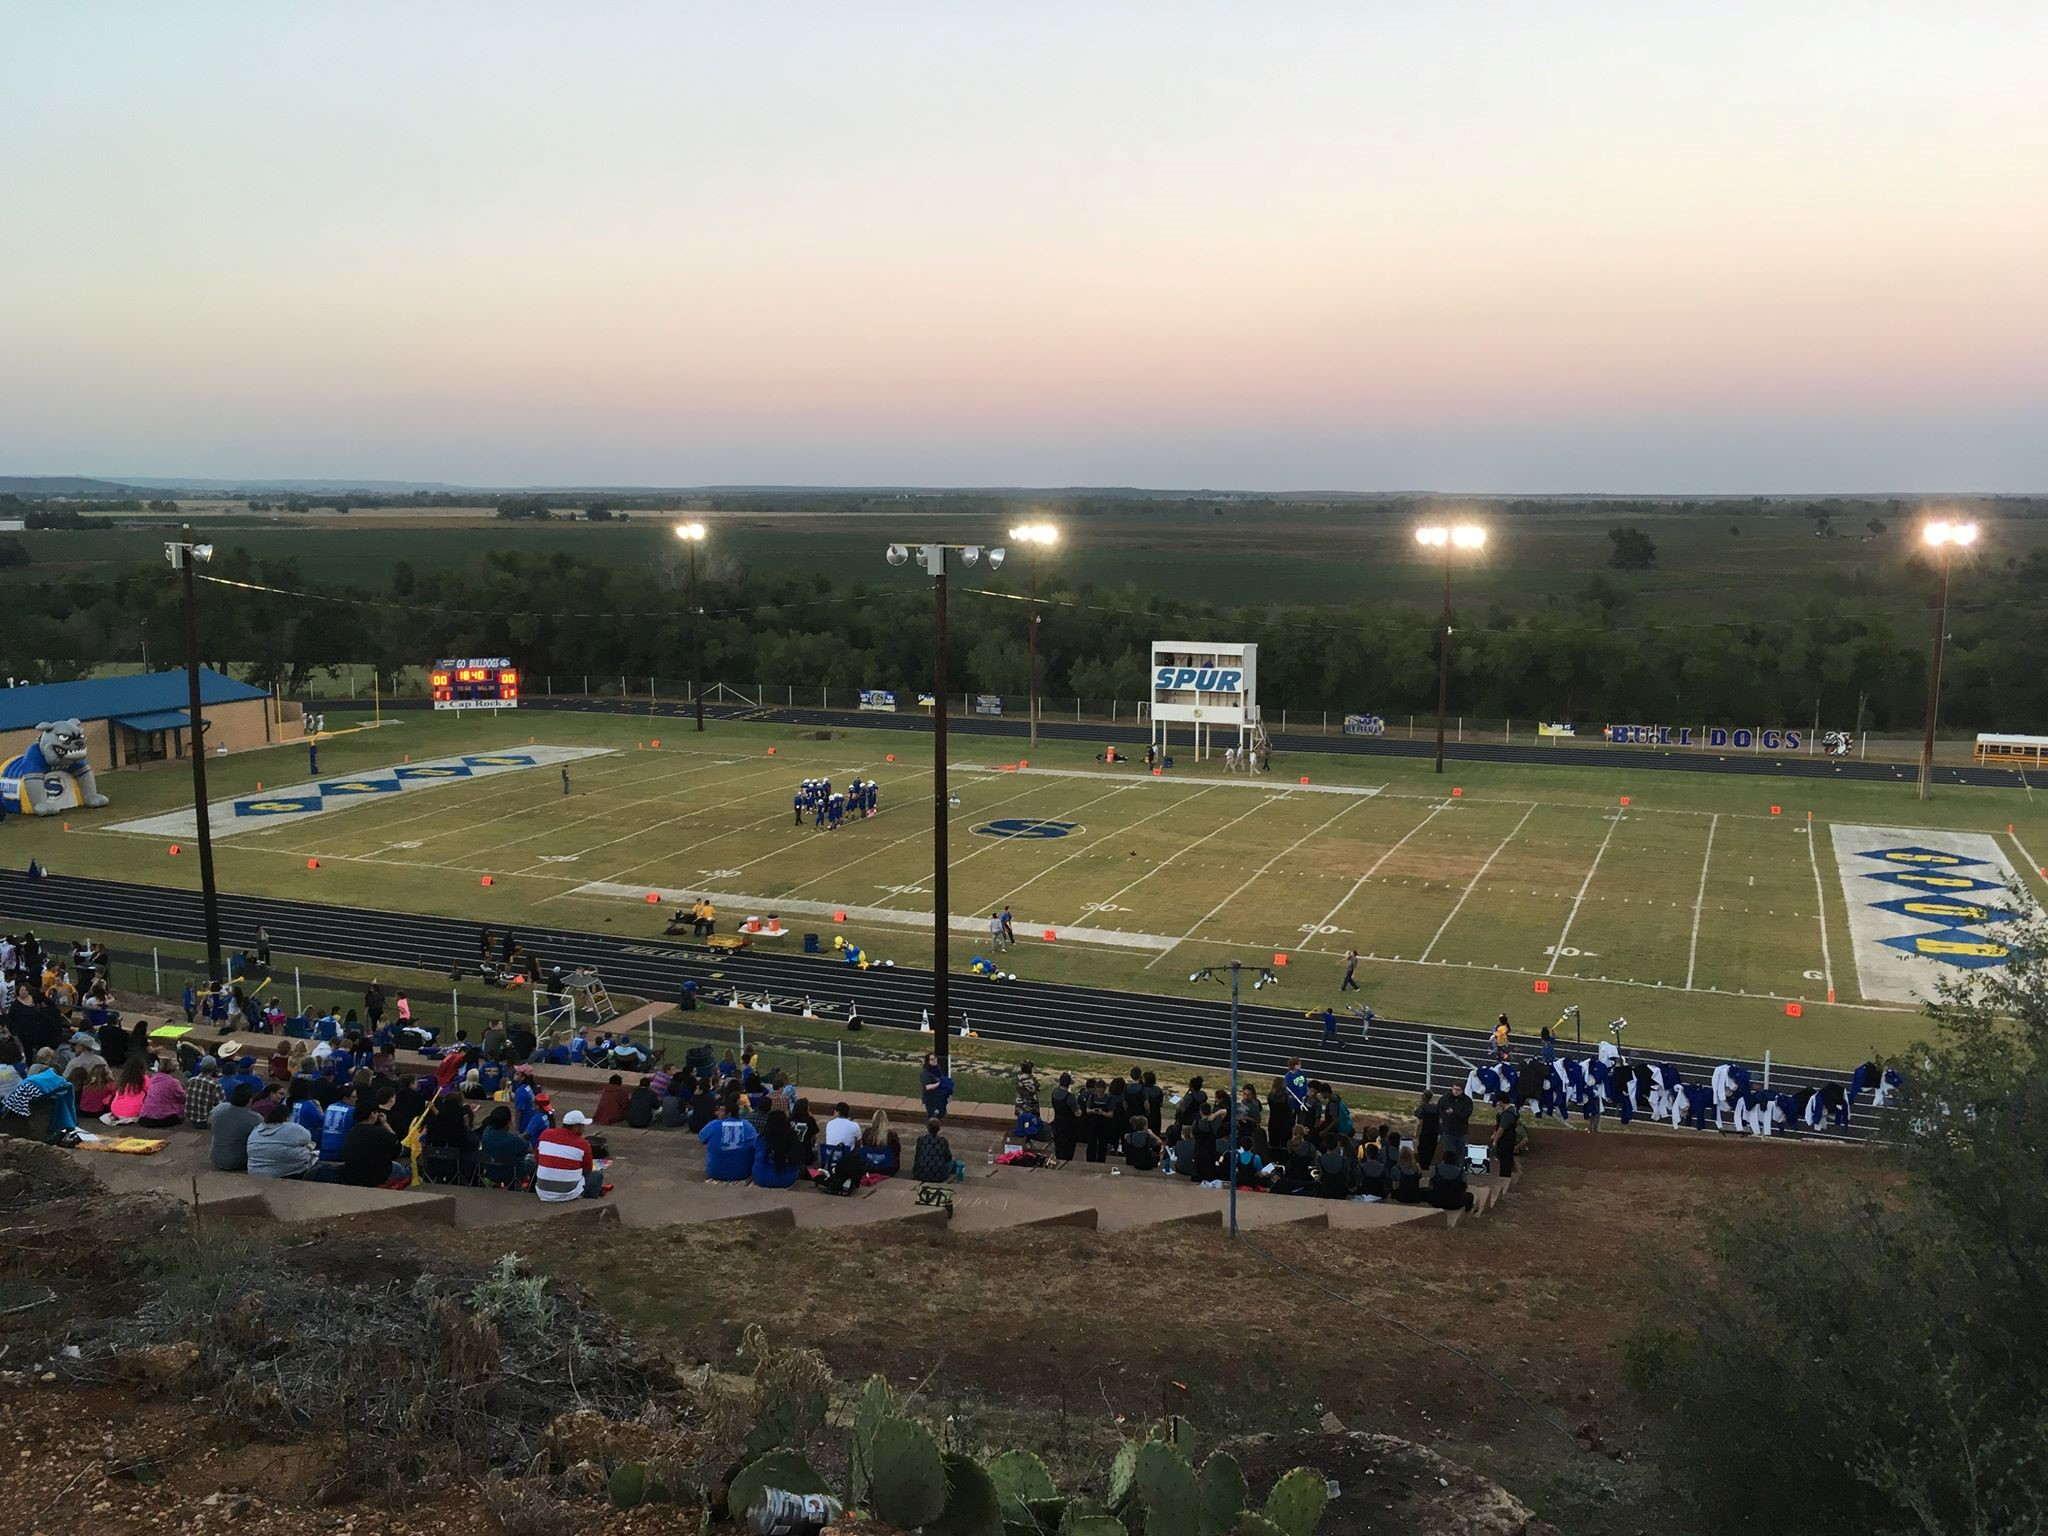 A photo of the football field, a few people gathered around it.